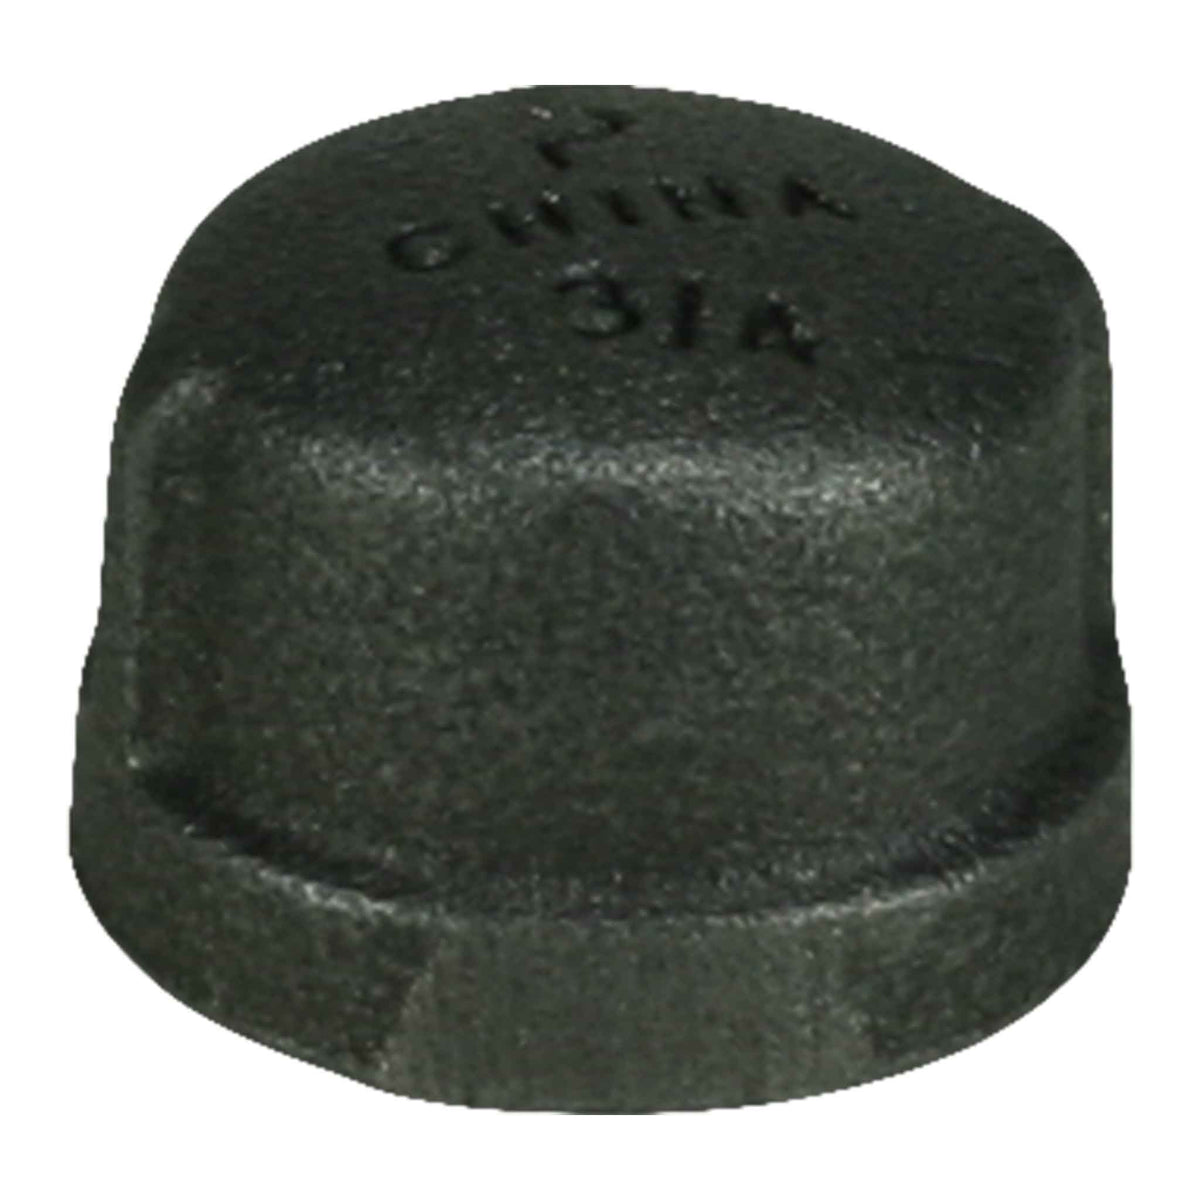 "3/4"" Black Iron Cap"